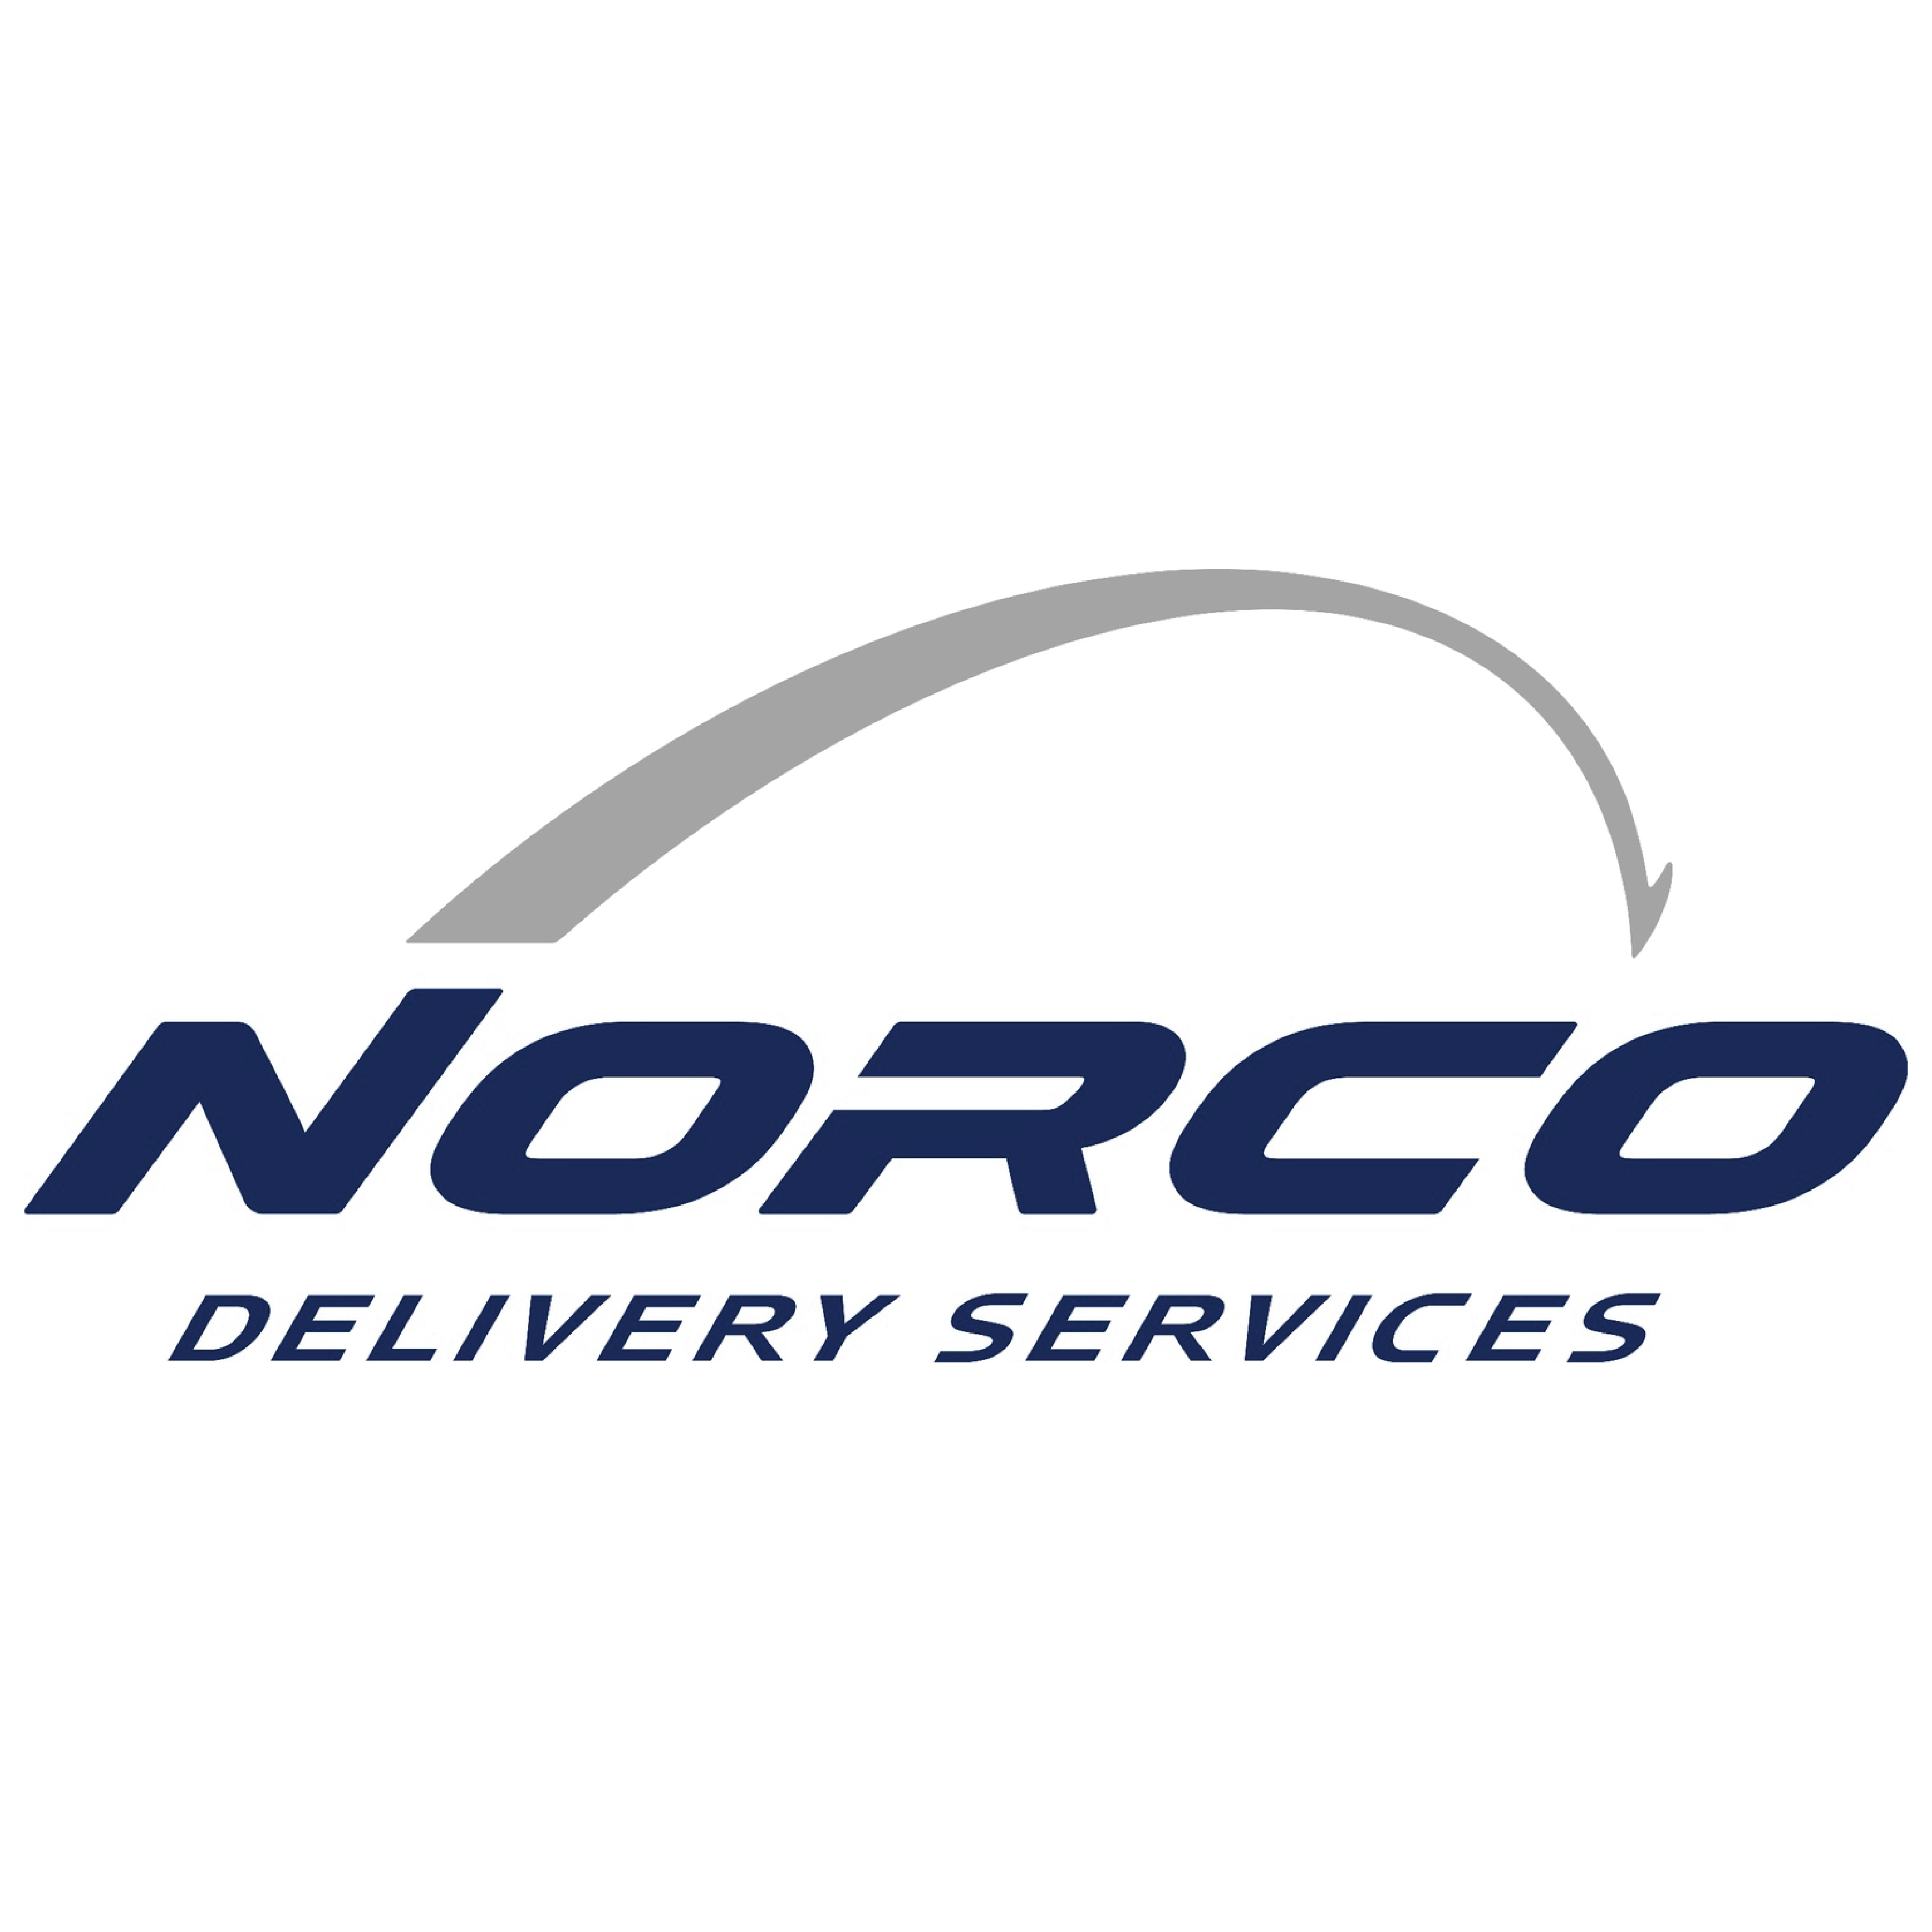 Norco Delivery Services Shipedge Integration